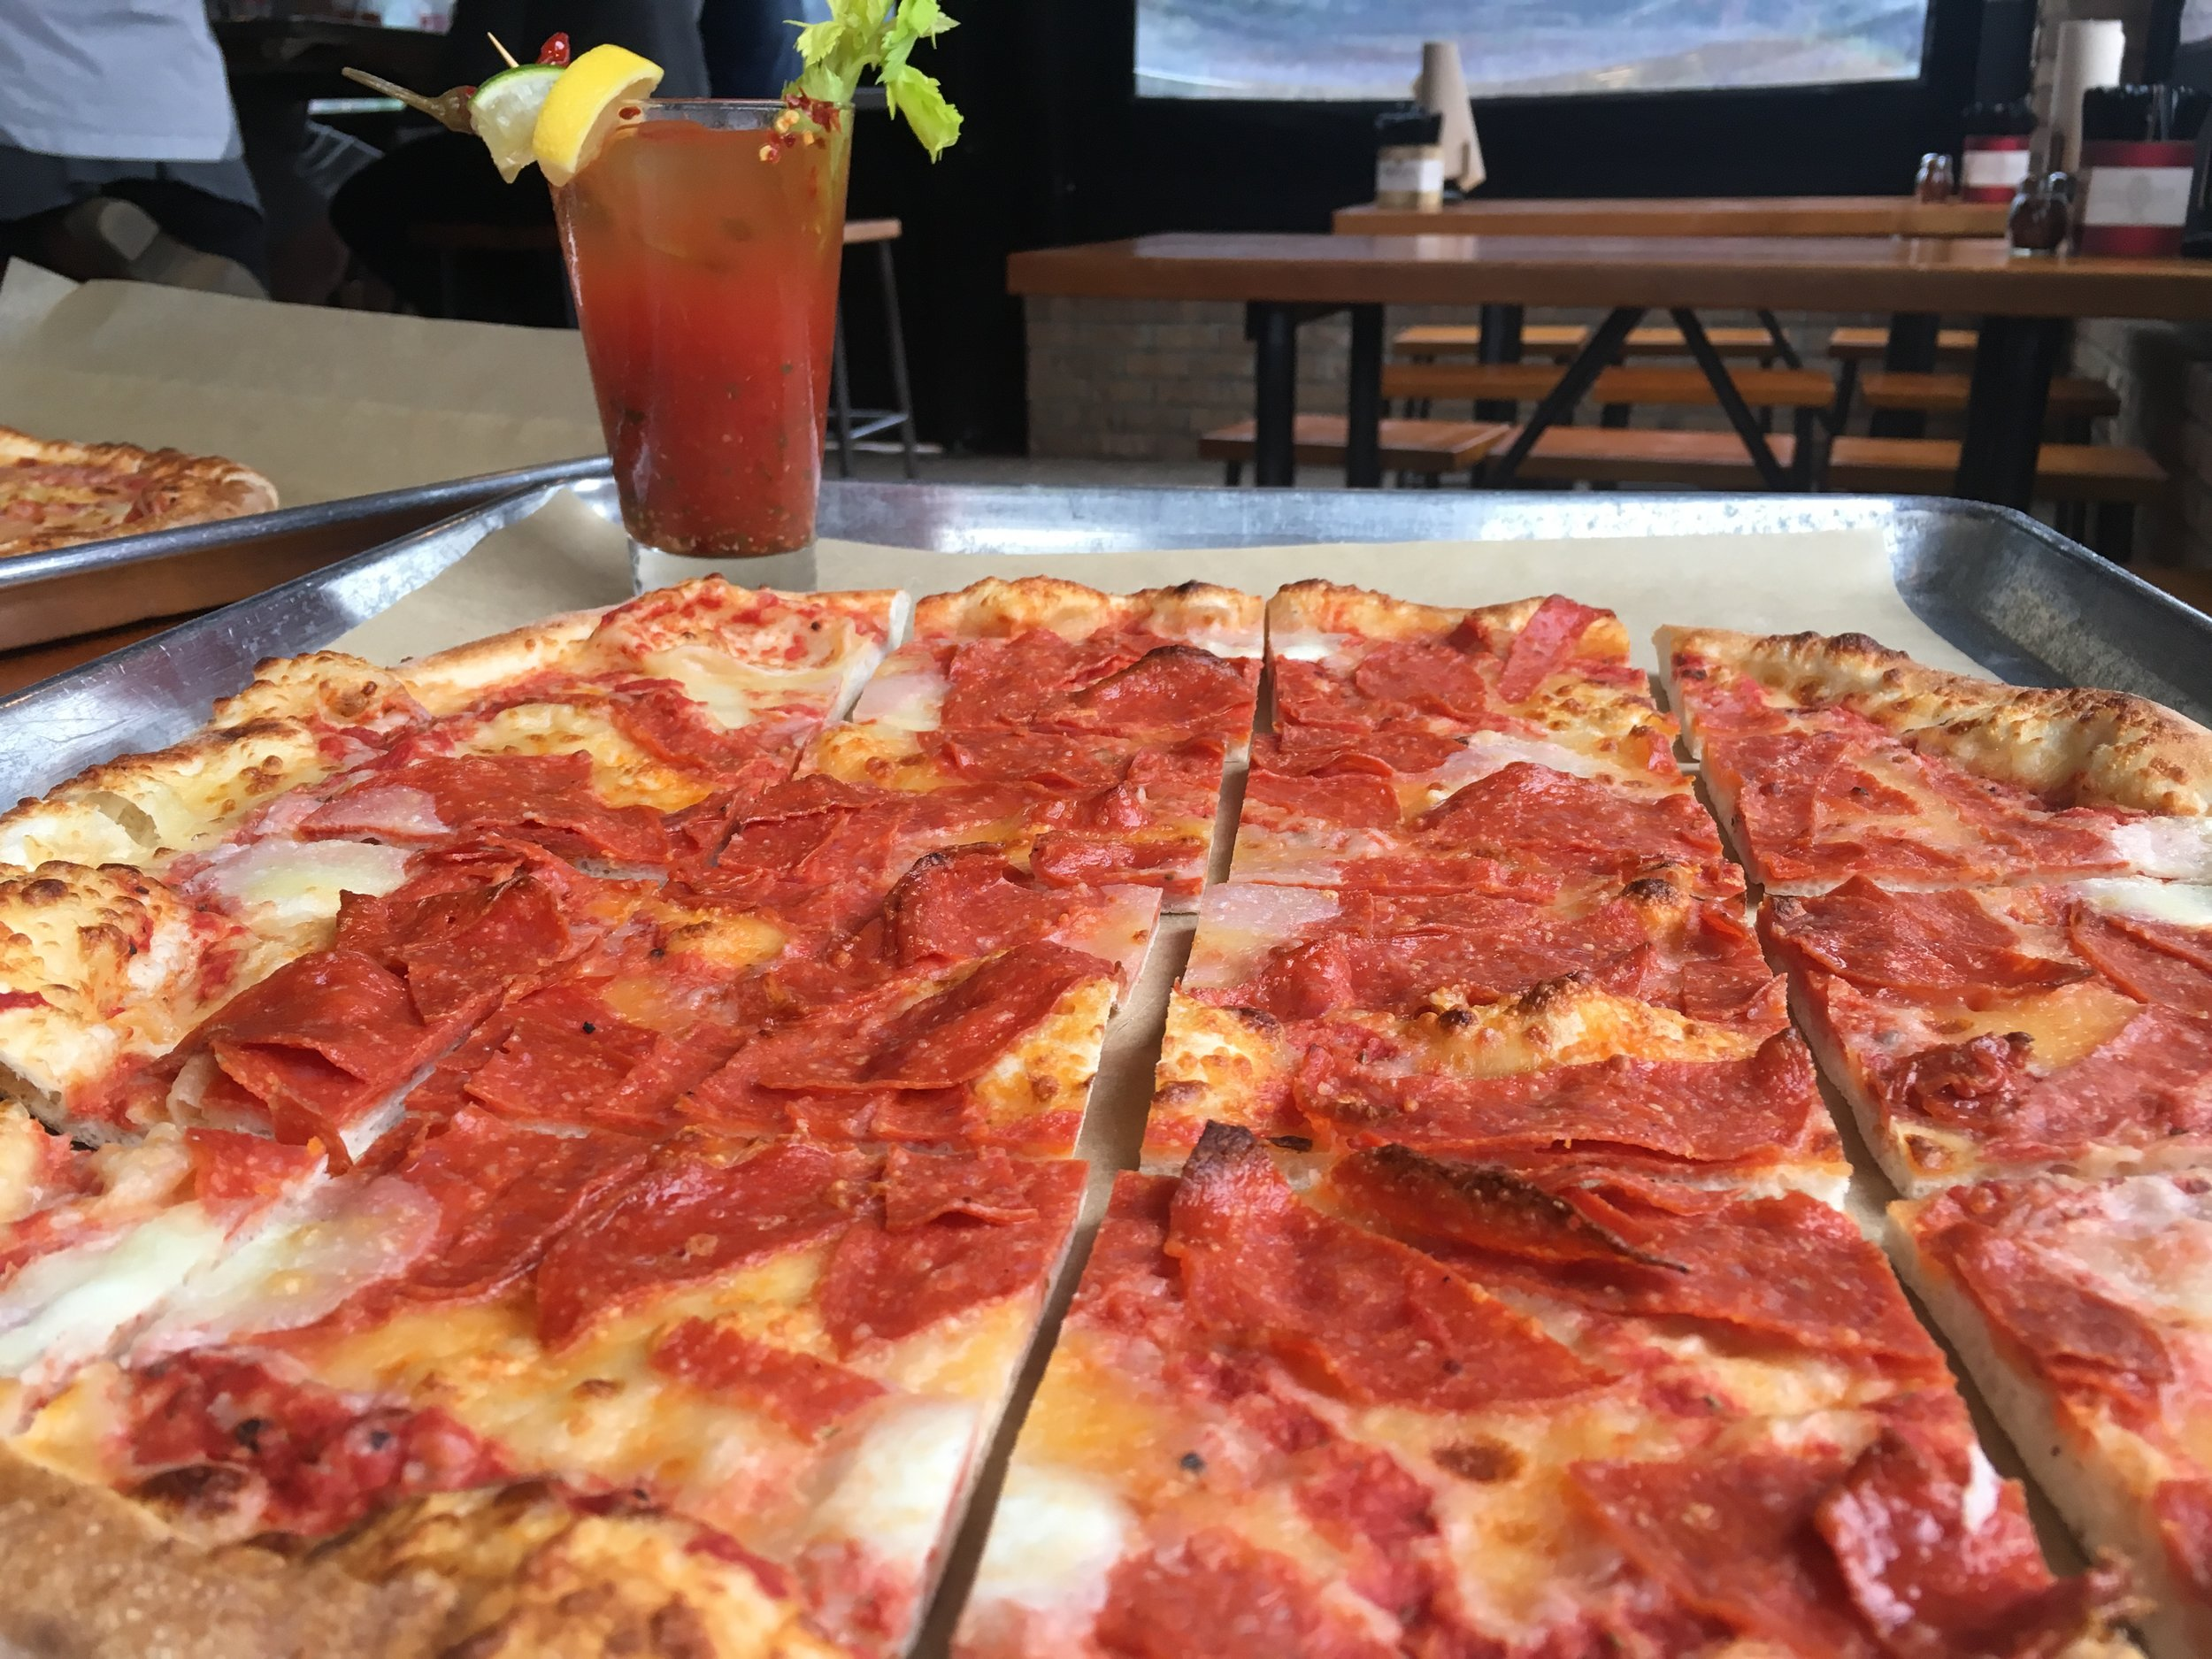 Cold pizza and a bloody mary - For what ails you on Sunday mornigns